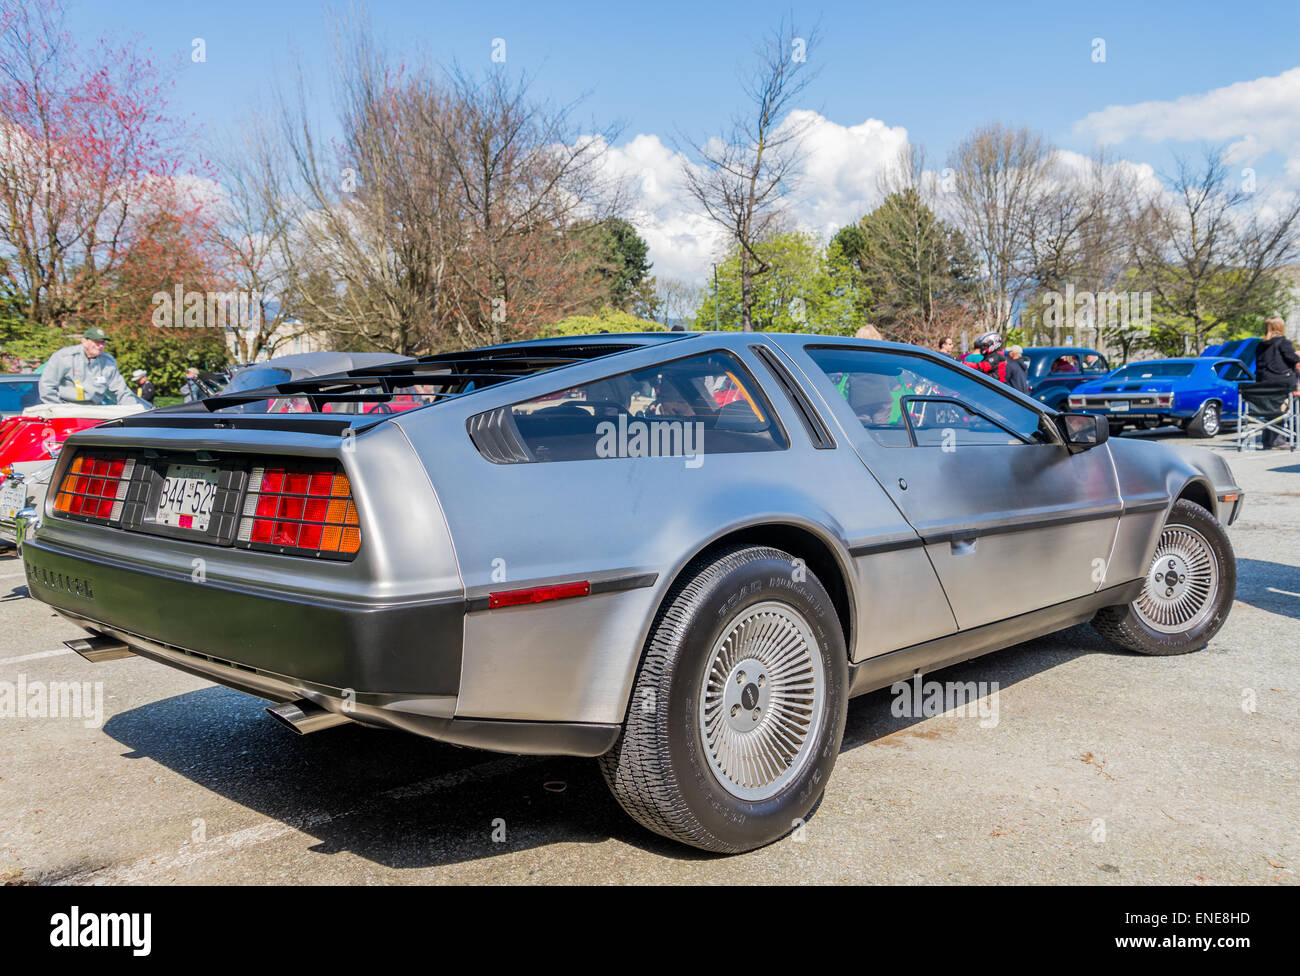 DeLorean automobile - Stock Image